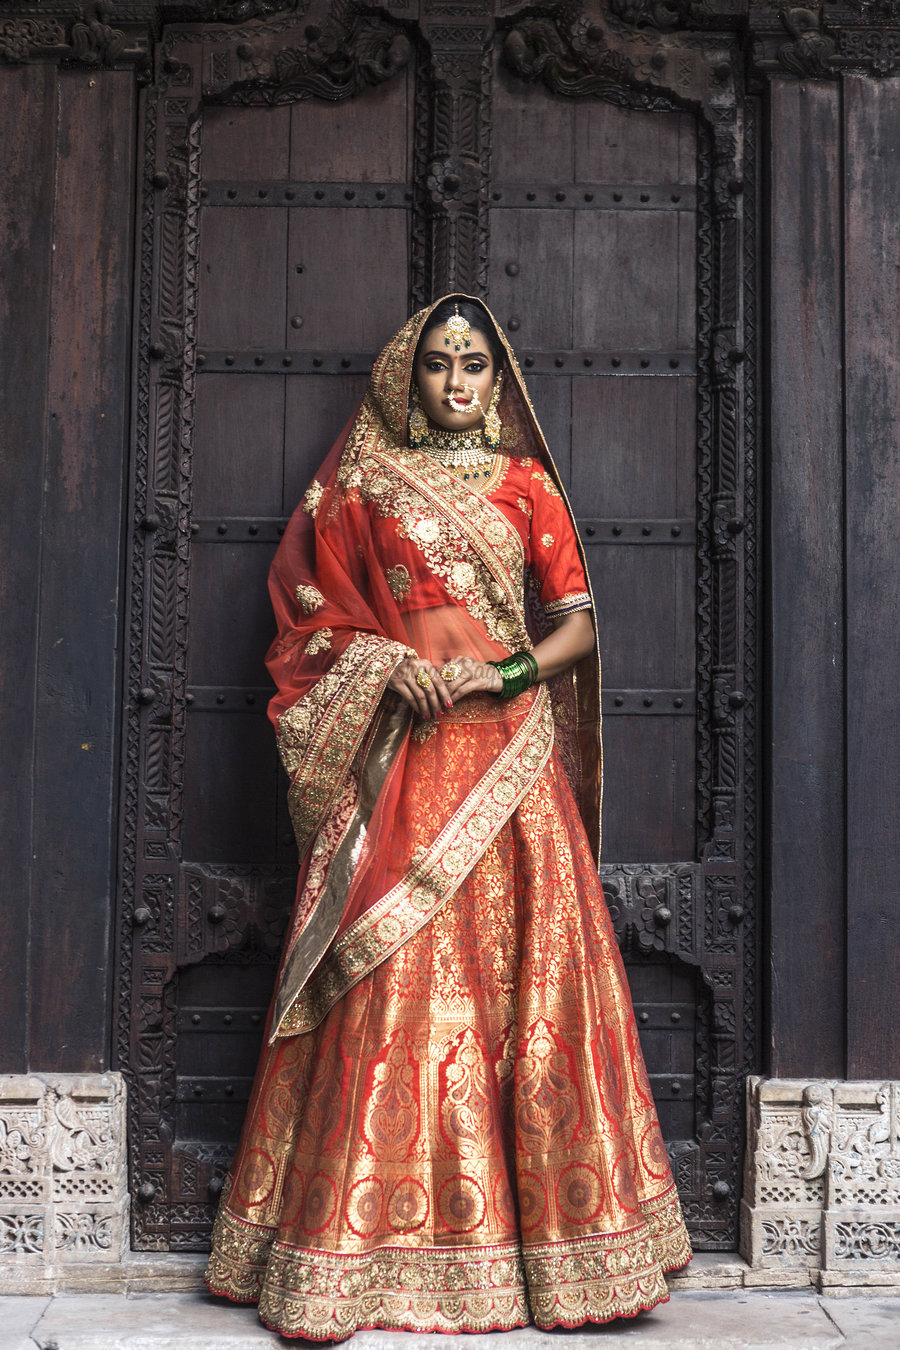 024aec1898 Breathtaking Banarasi Wedding Outfits every Bride-to-be MUST check ...